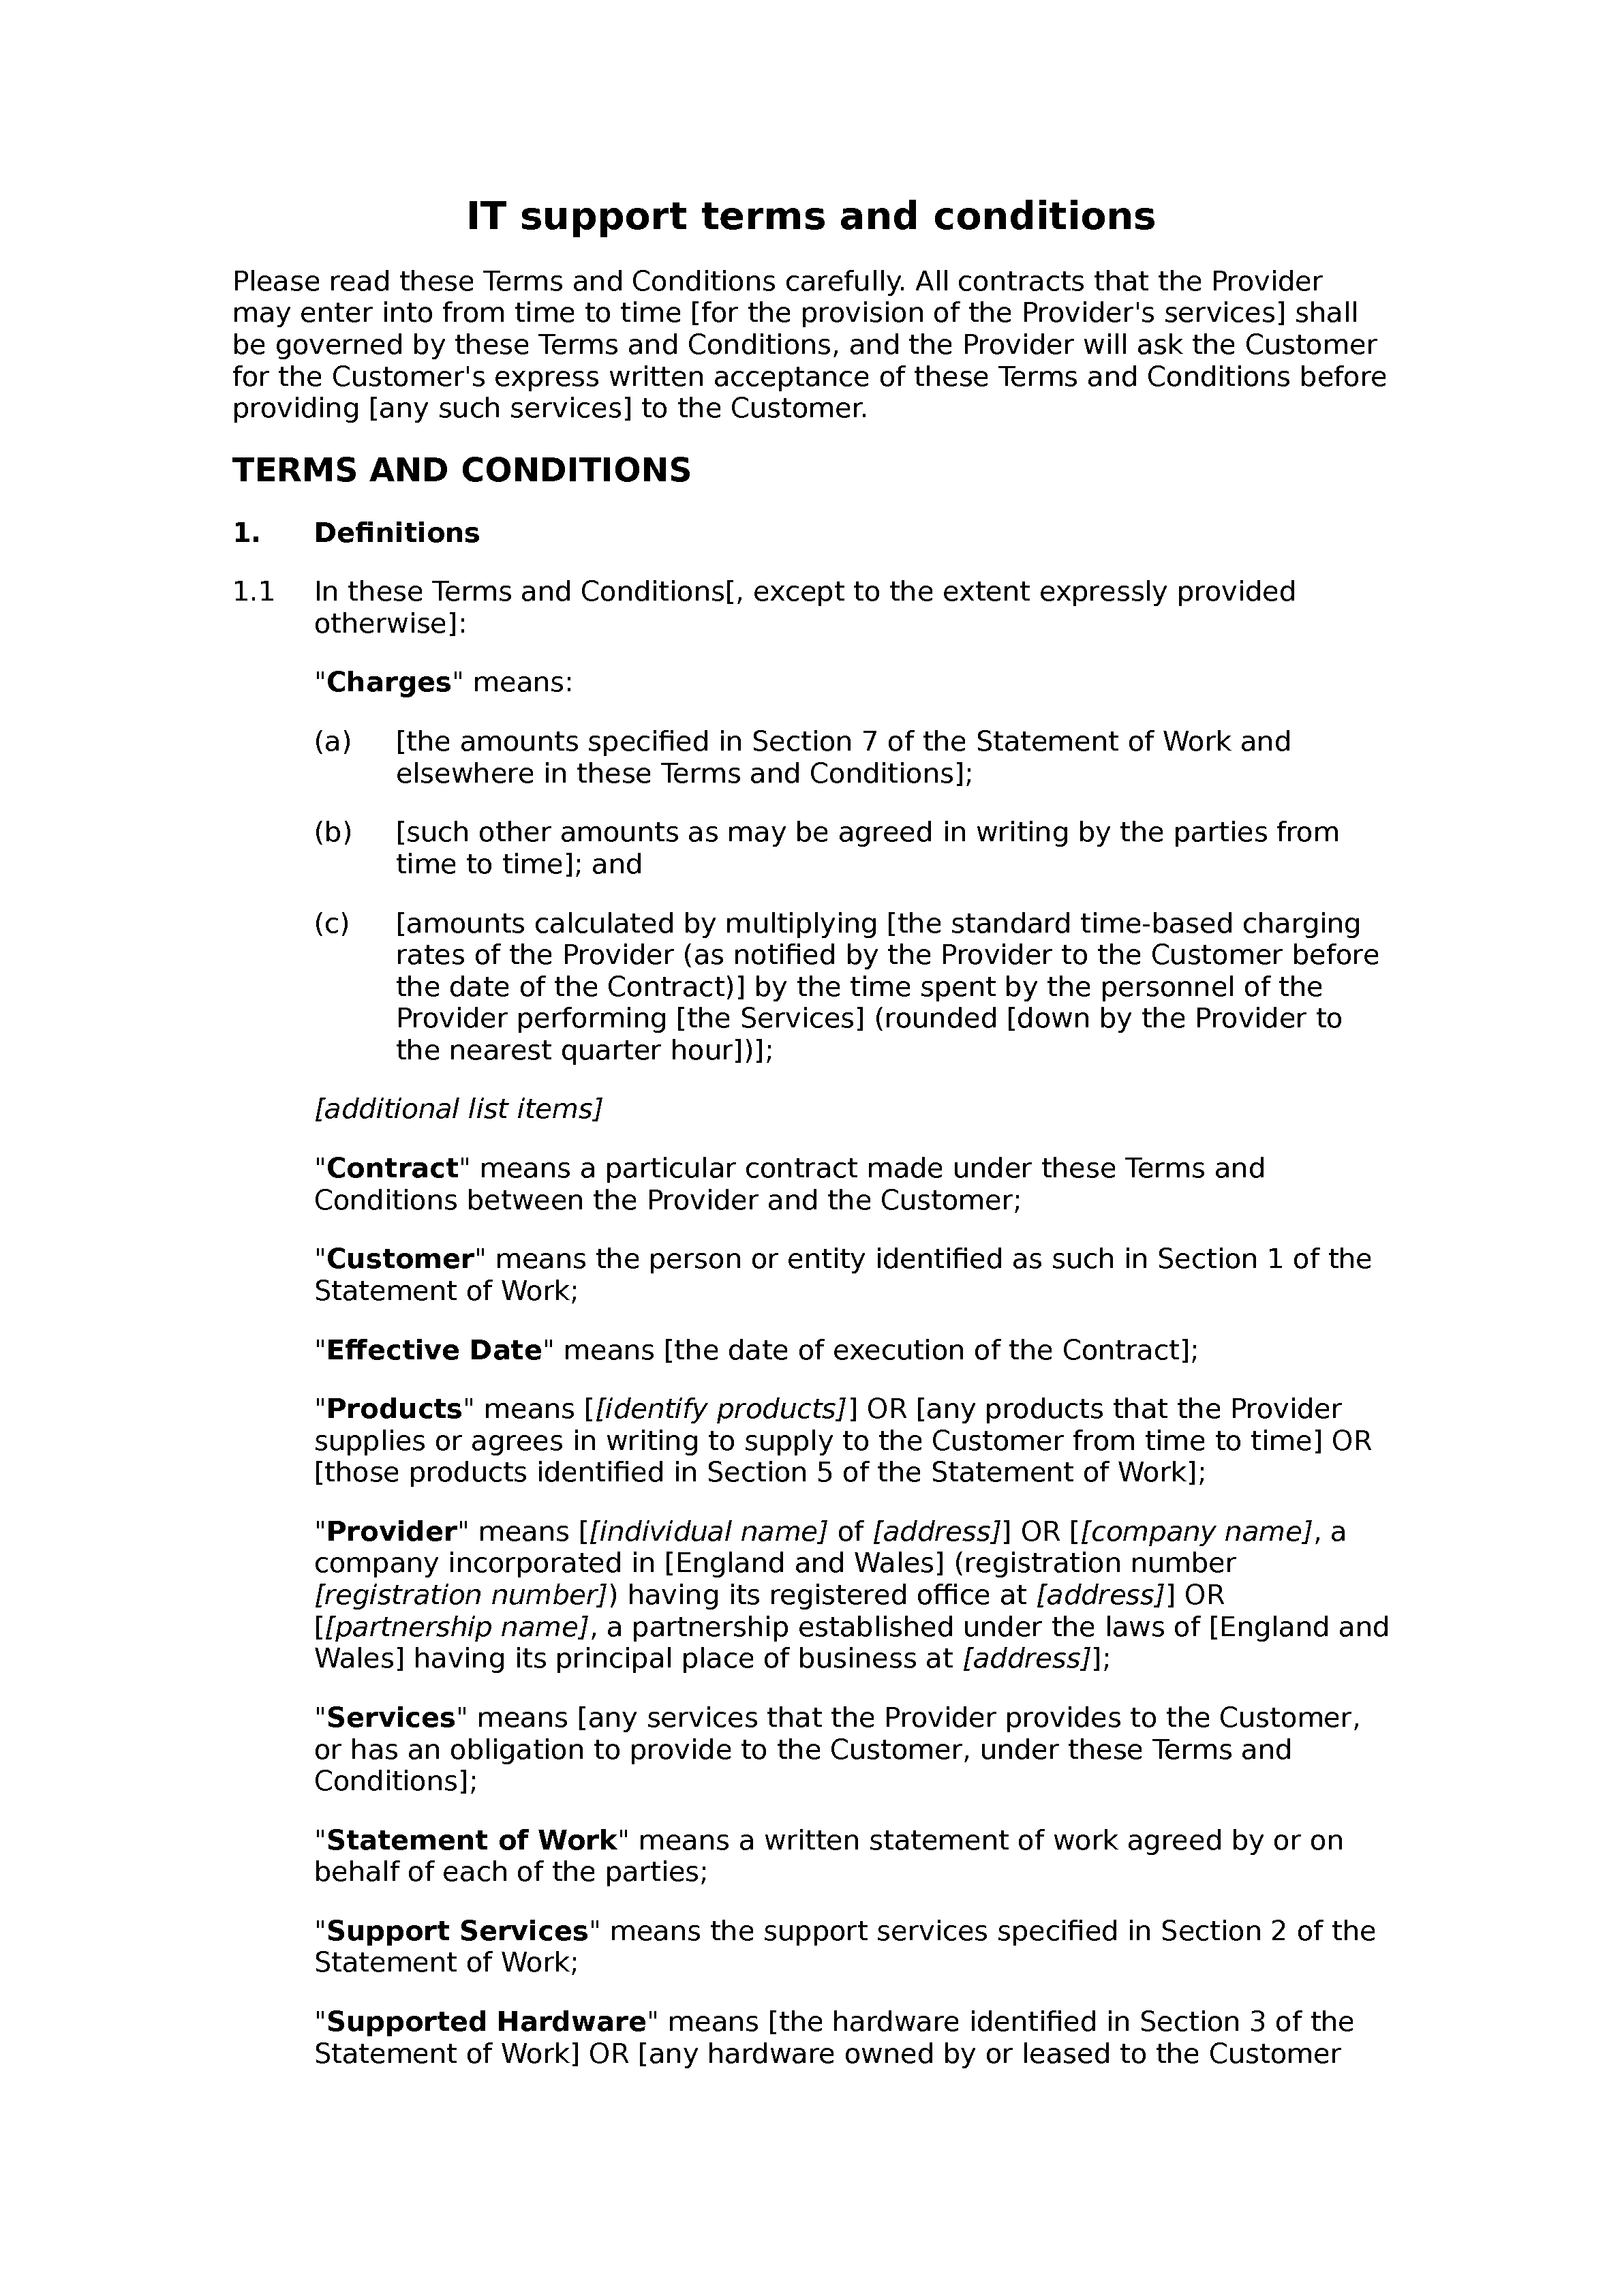 IT support terms and conditions (B2C) document preview